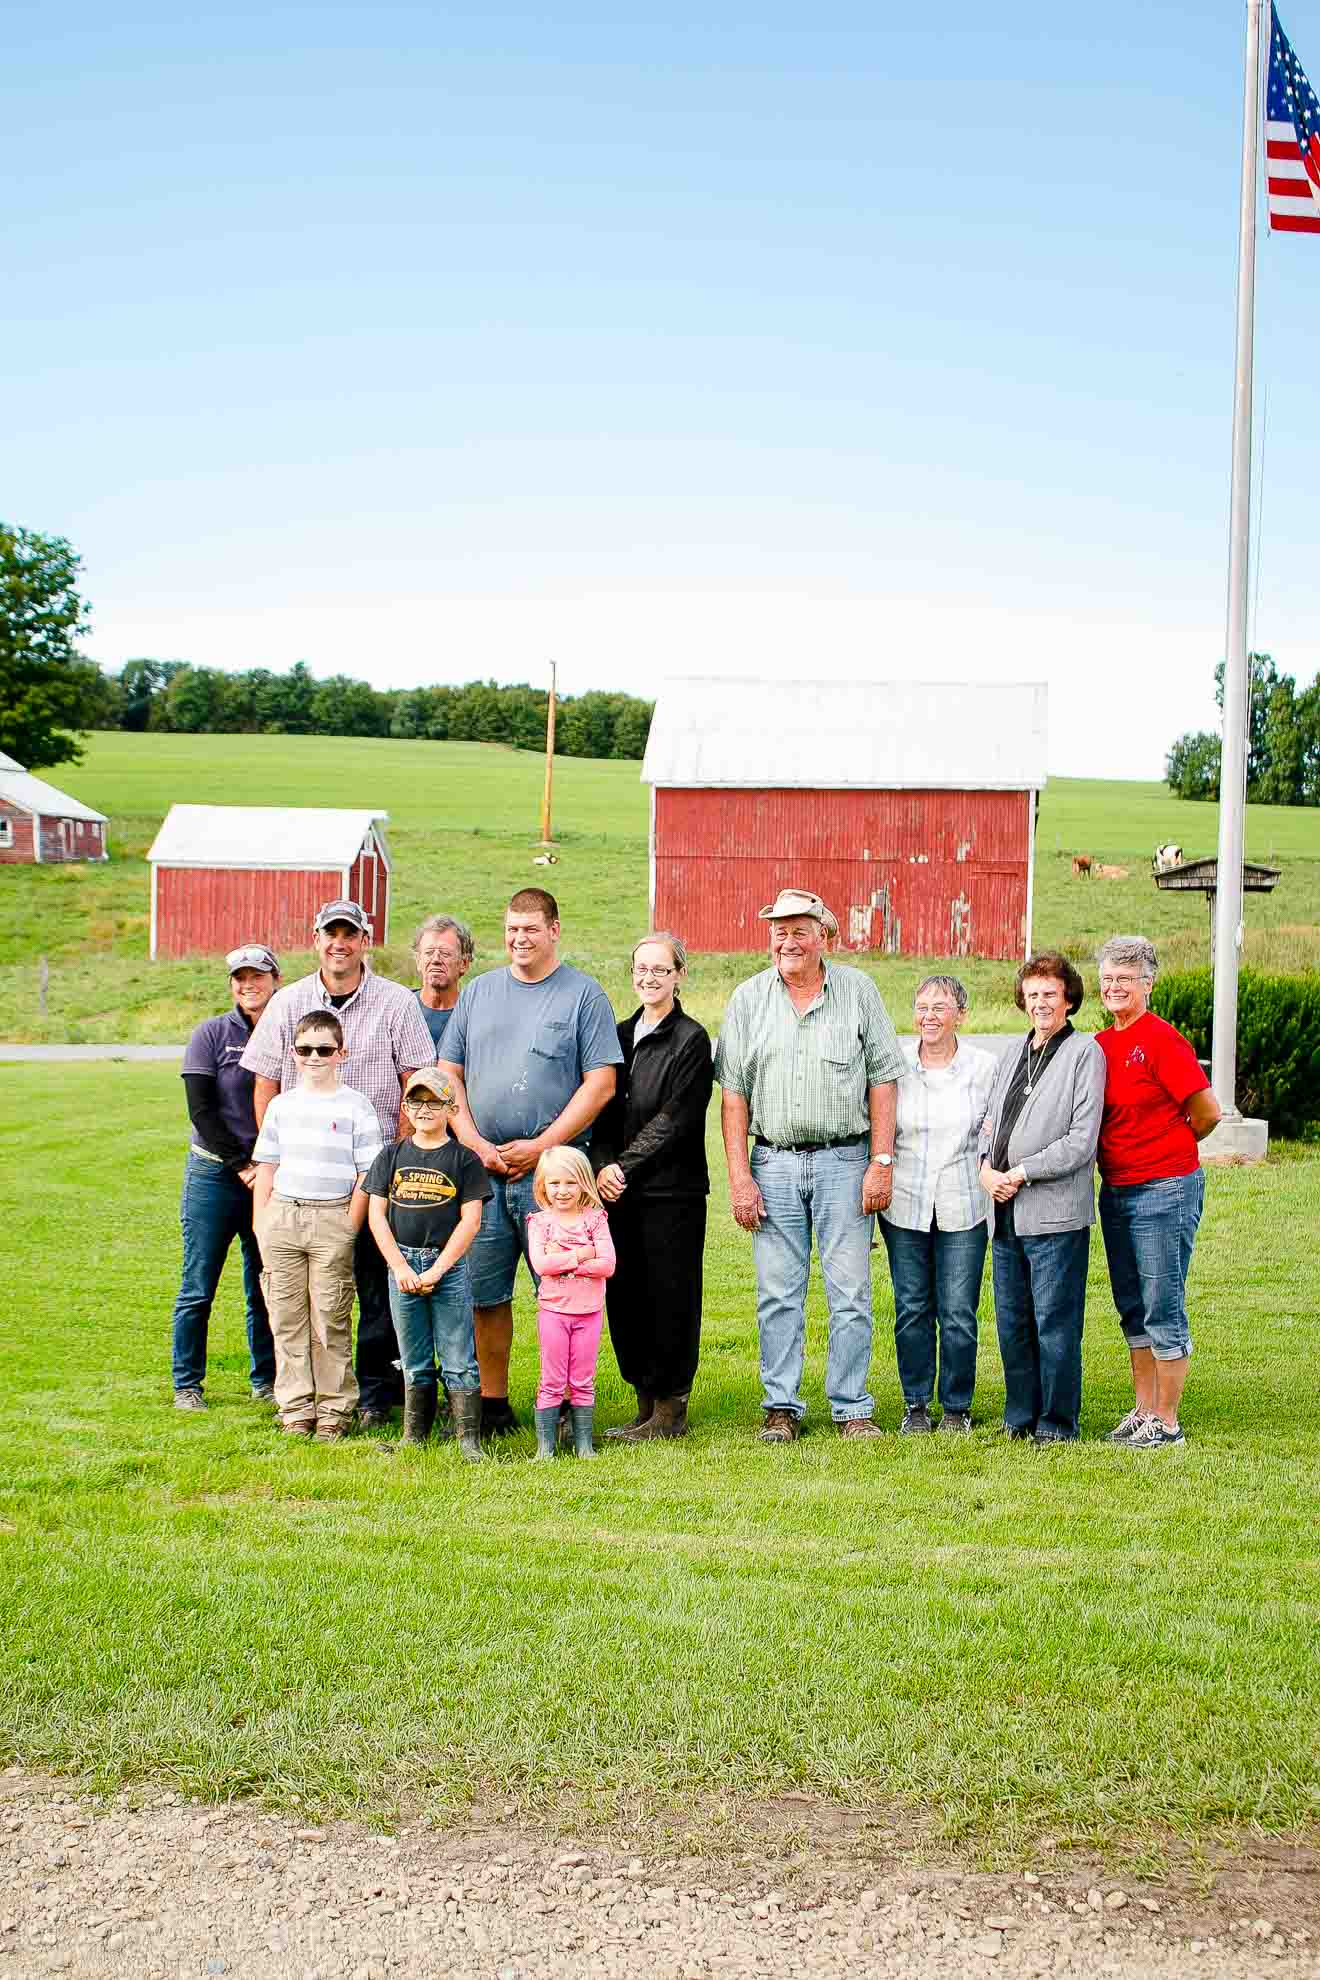 The owners and families that run the High Meadows Organic Dairy Farm in New York